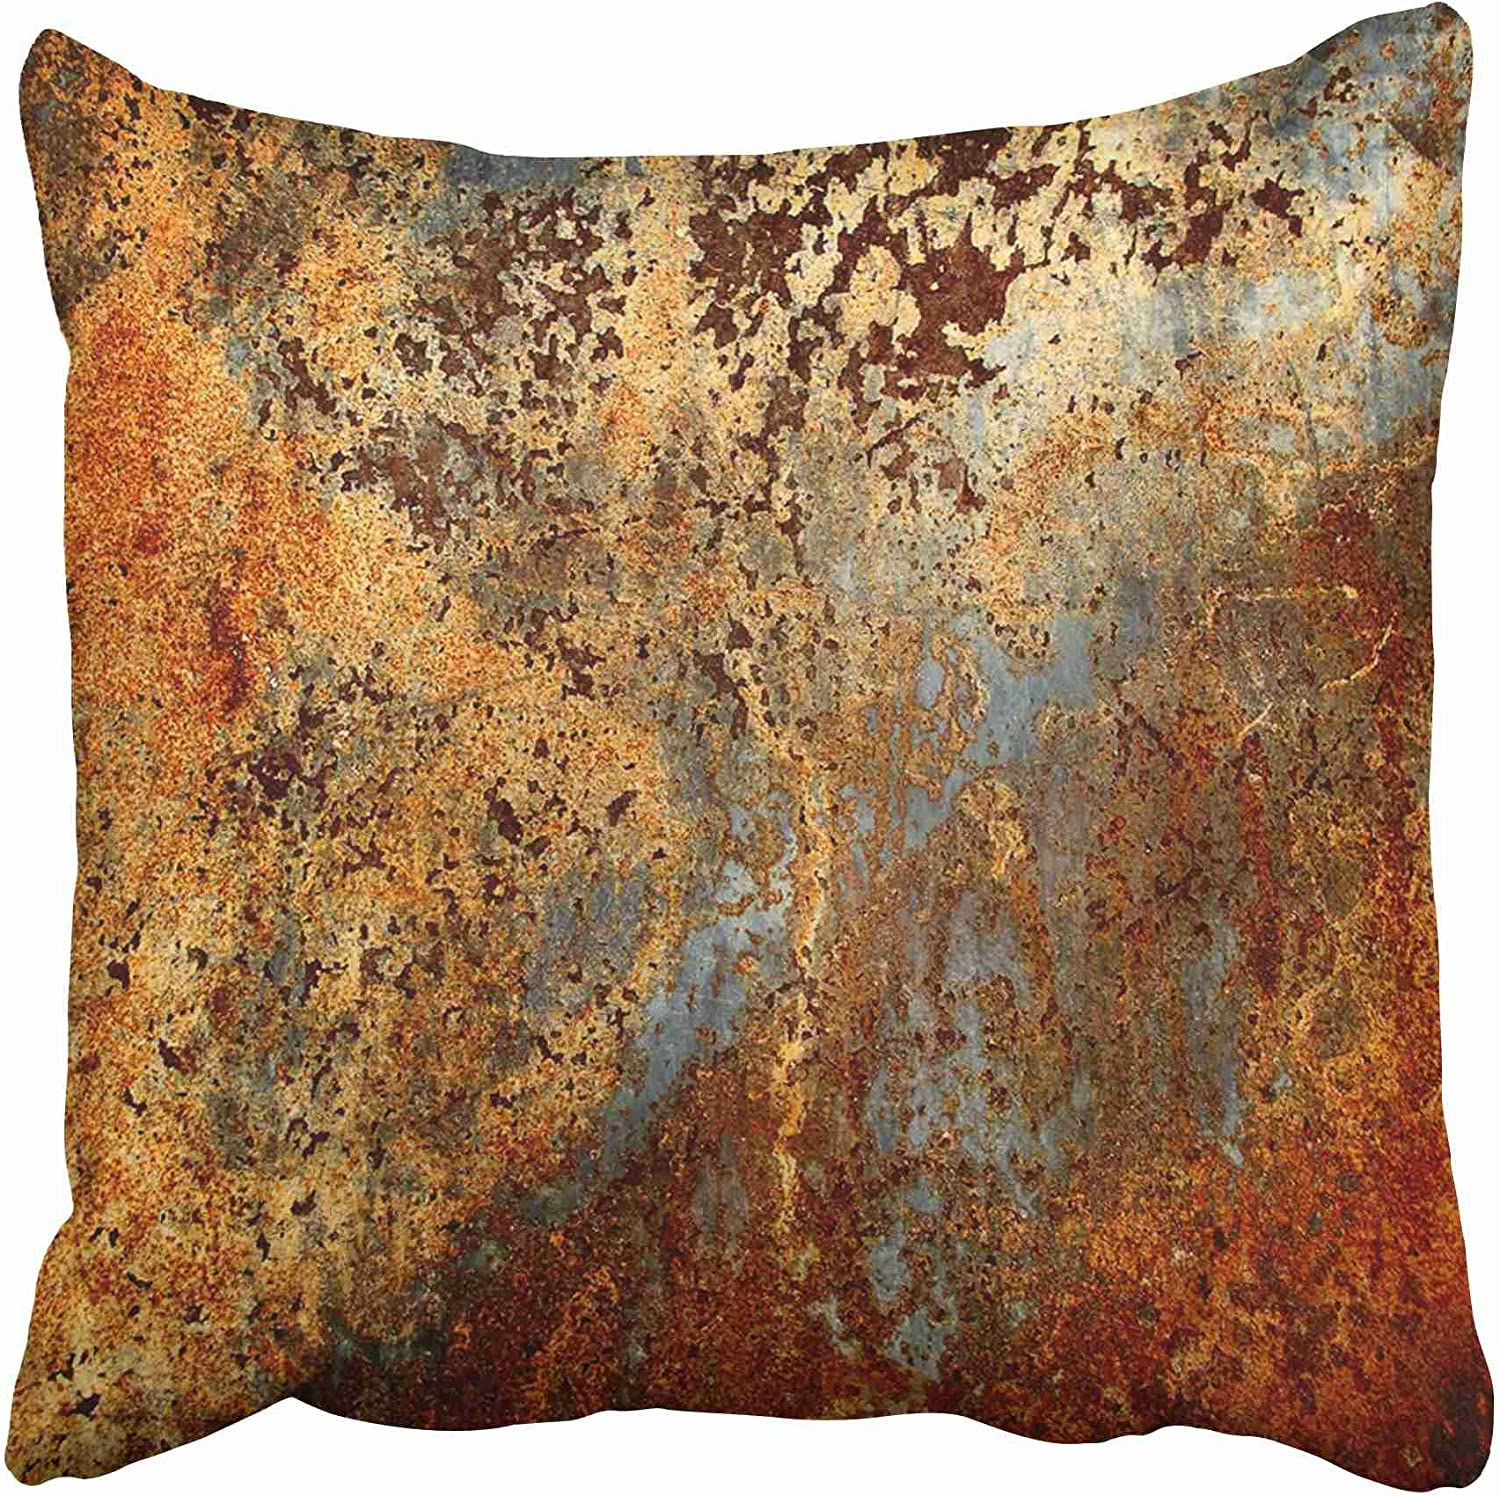 Emvency Throw Pillow Covers Cases Decorative 20x20 Inch Brown Rust Colorful Metal Rusty Steel Iron Structure Wall Door Two Sides Print Pillowcase Case Cushion Cover